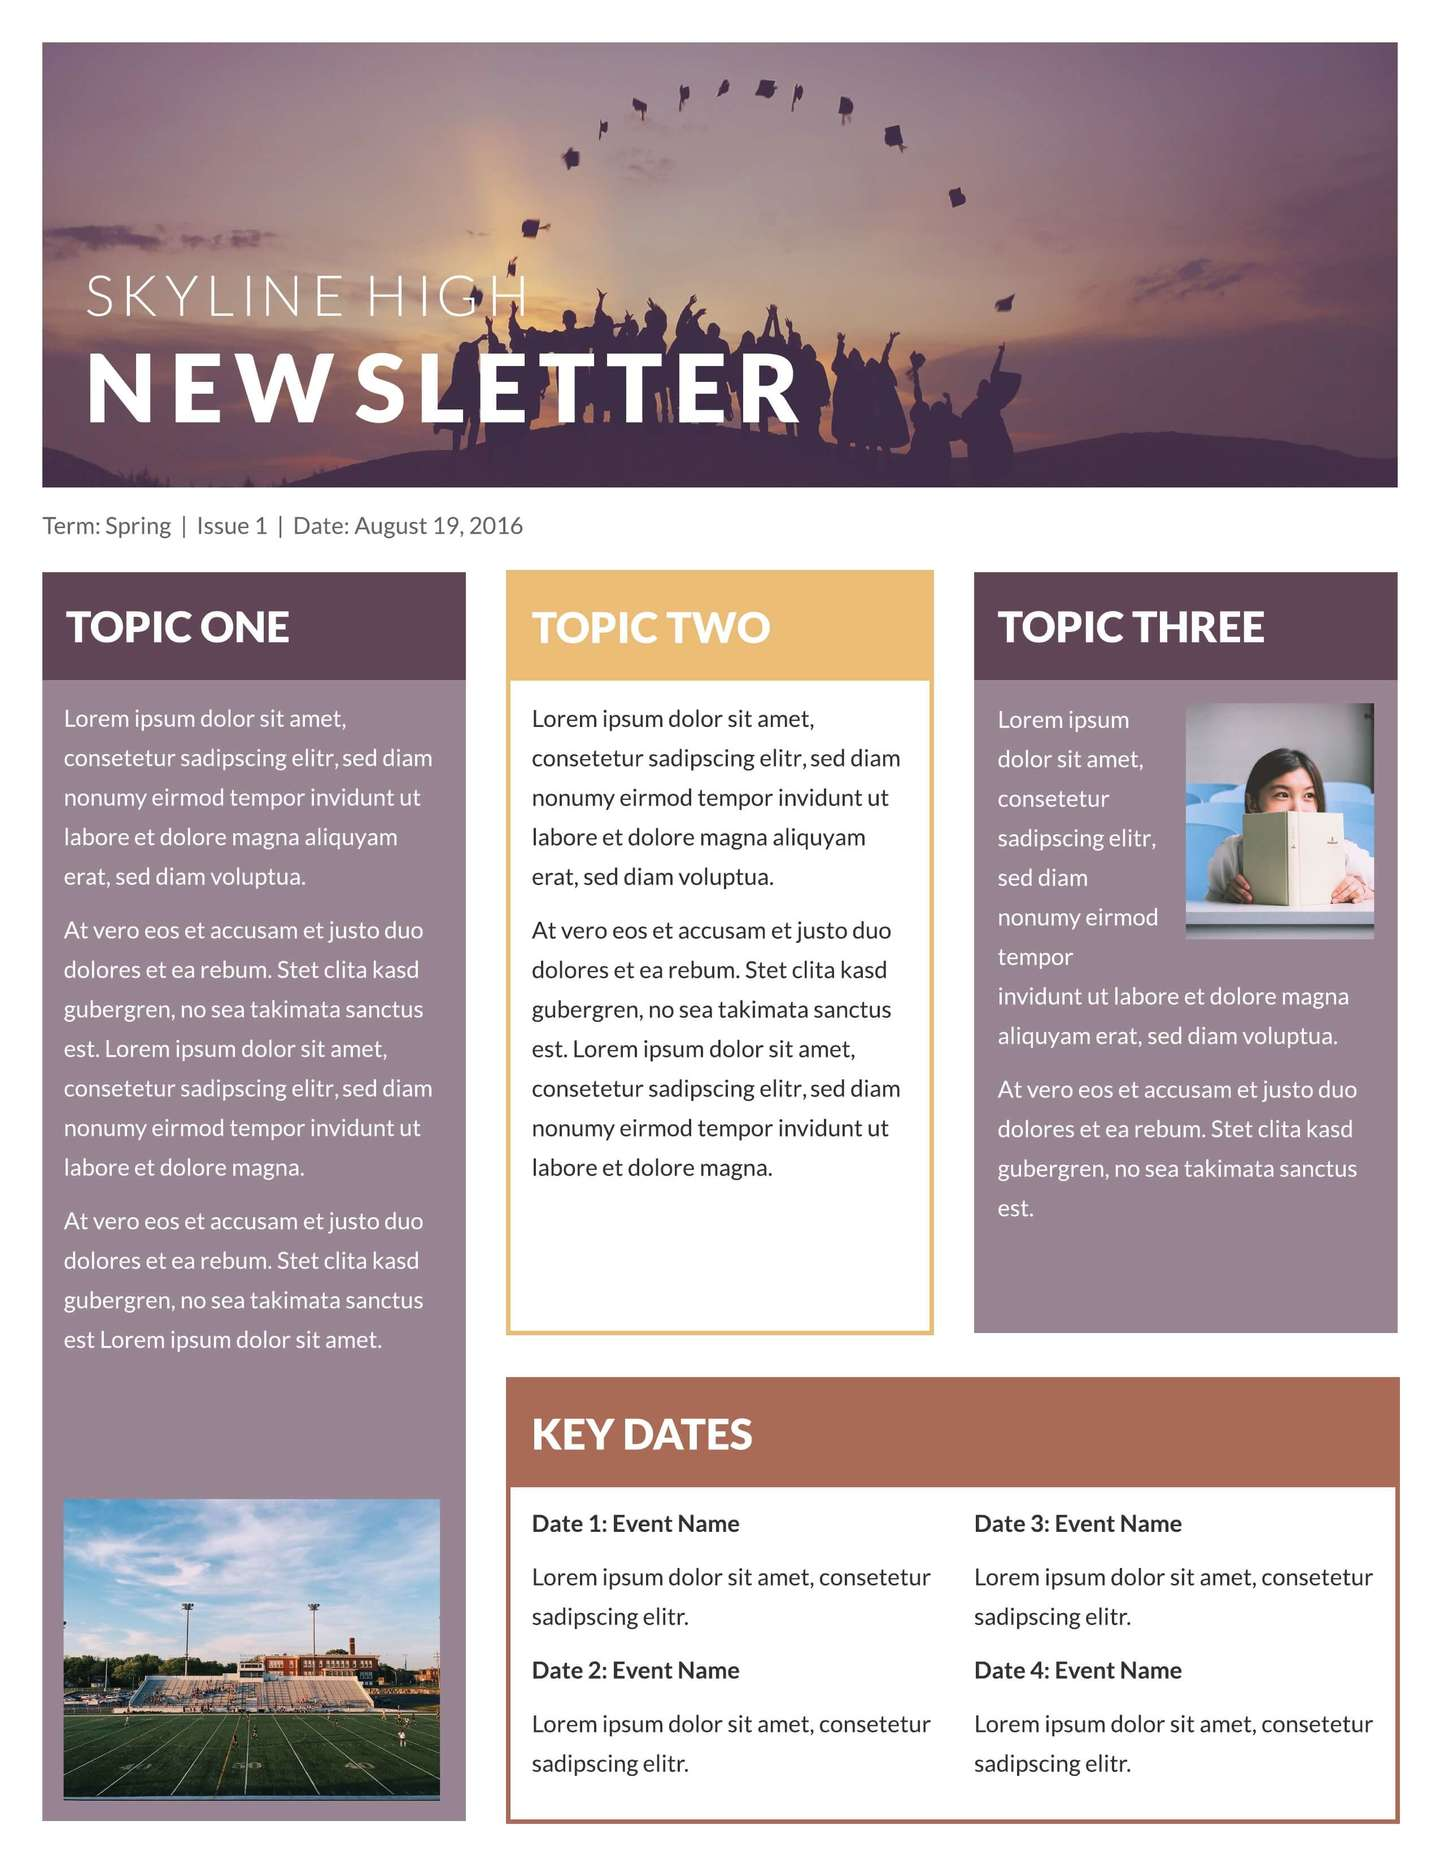 Free newsletter templates examples 10 free templates skyline high classroom newsletter template thecheapjerseys Choice Image